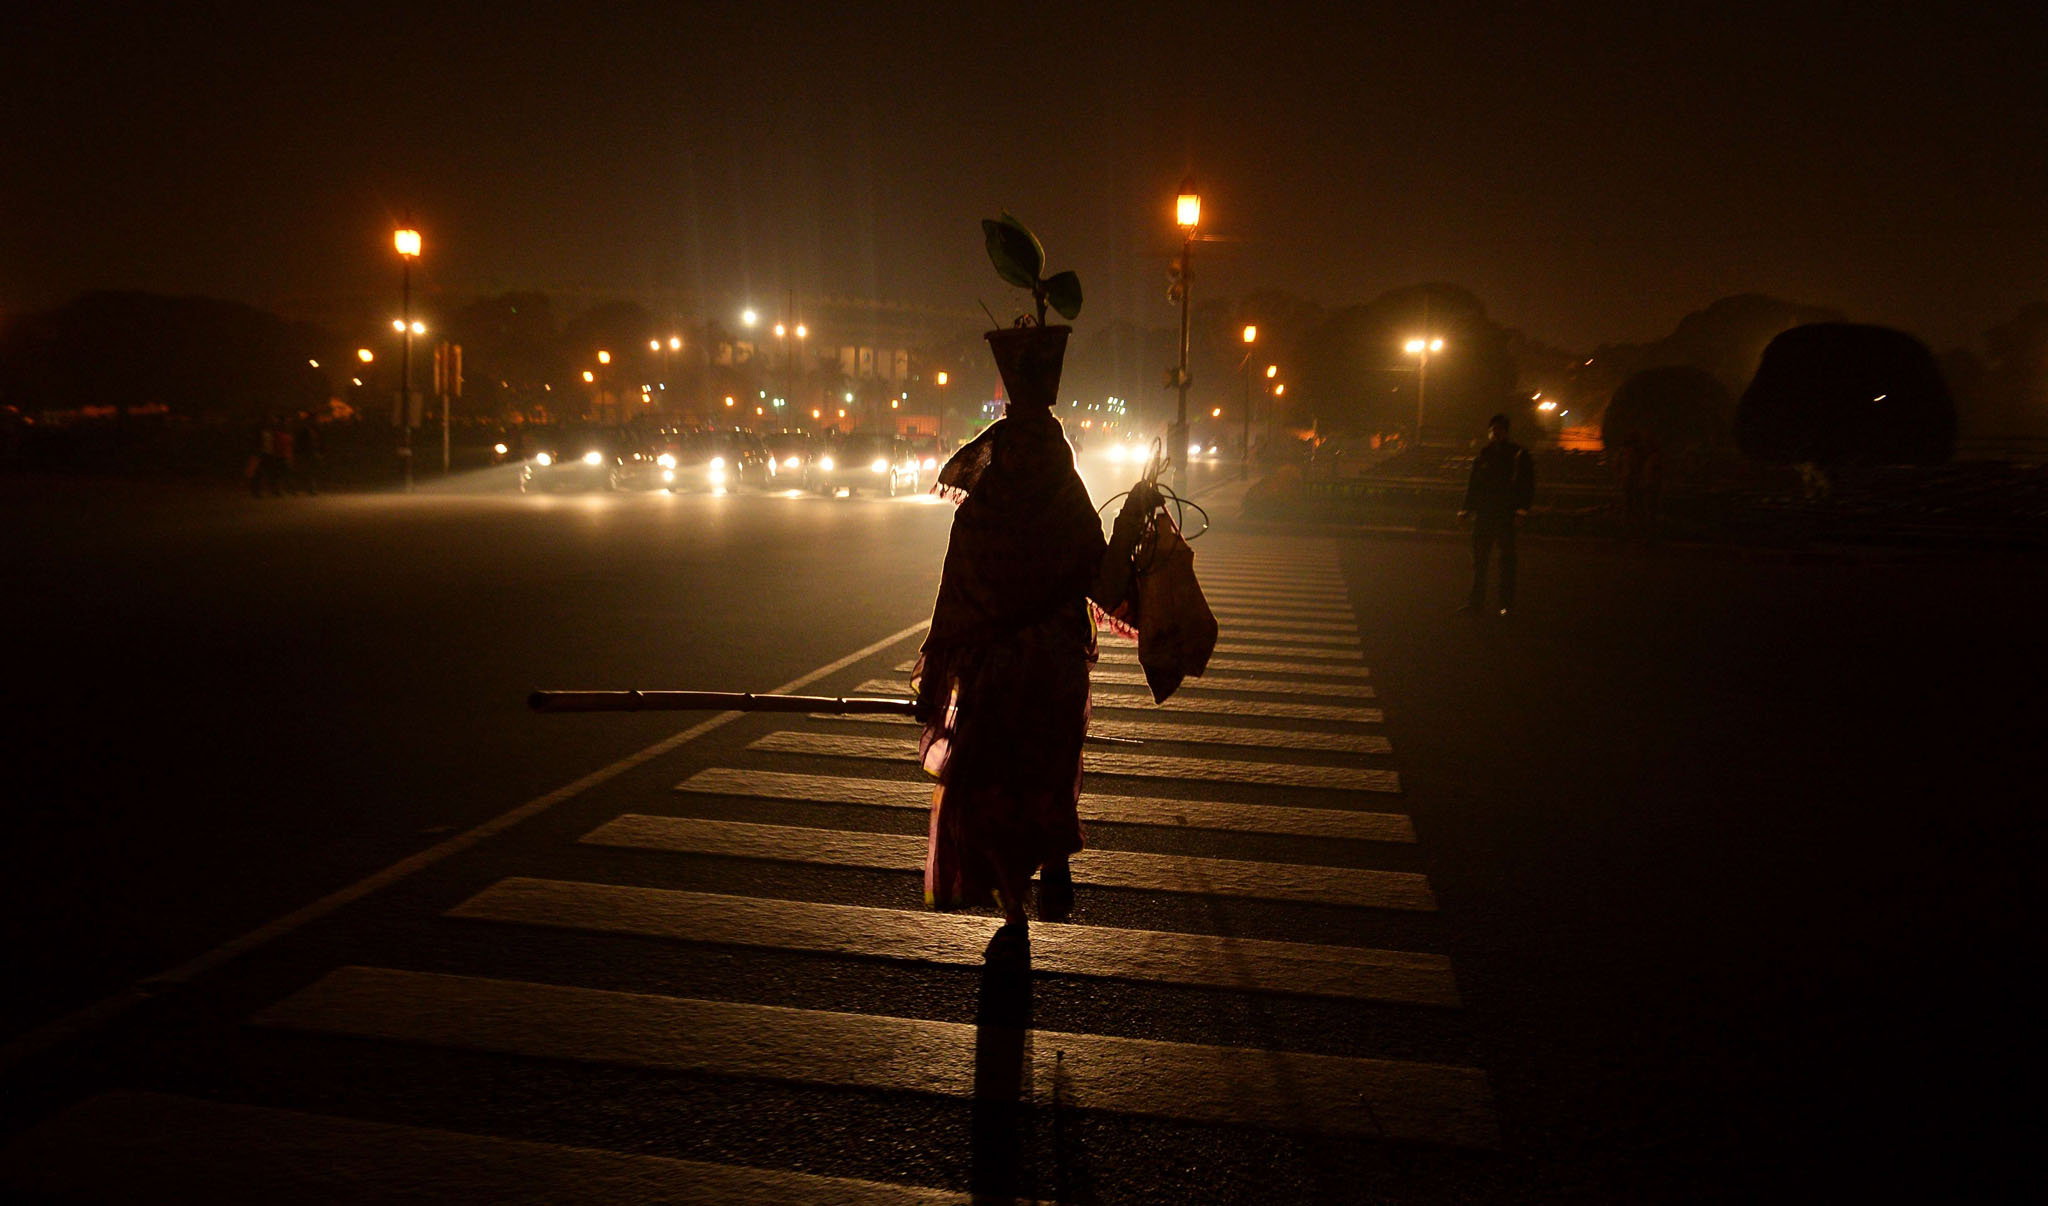 An Indian woman crosses the road in New ...An Indian woman crosses the road in New Delhi on January 20, 2015. India is part of a global trend that is advancing towards an increasing urbanisation, with more than half of the world's population living in towns and cities. AFP PHOTO / CHANDAN KHANNAChandan Khanna/AFP/Getty Images